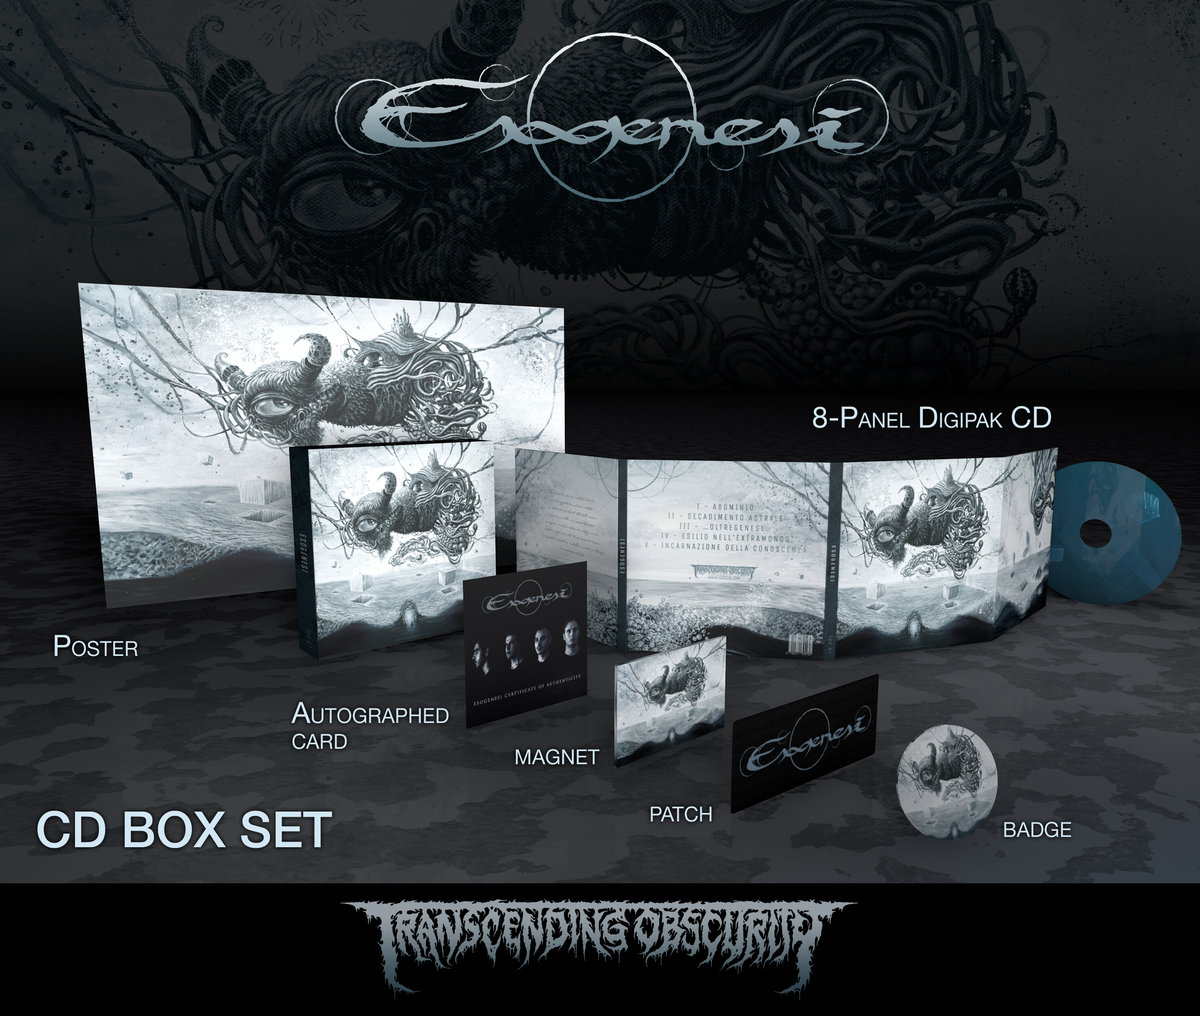 ESOGENESI (Italy) – Self - titled (Death / Doom Metal) Autographed Limited  Edition CD Box Set - TRANSCENDING OBSCURITY